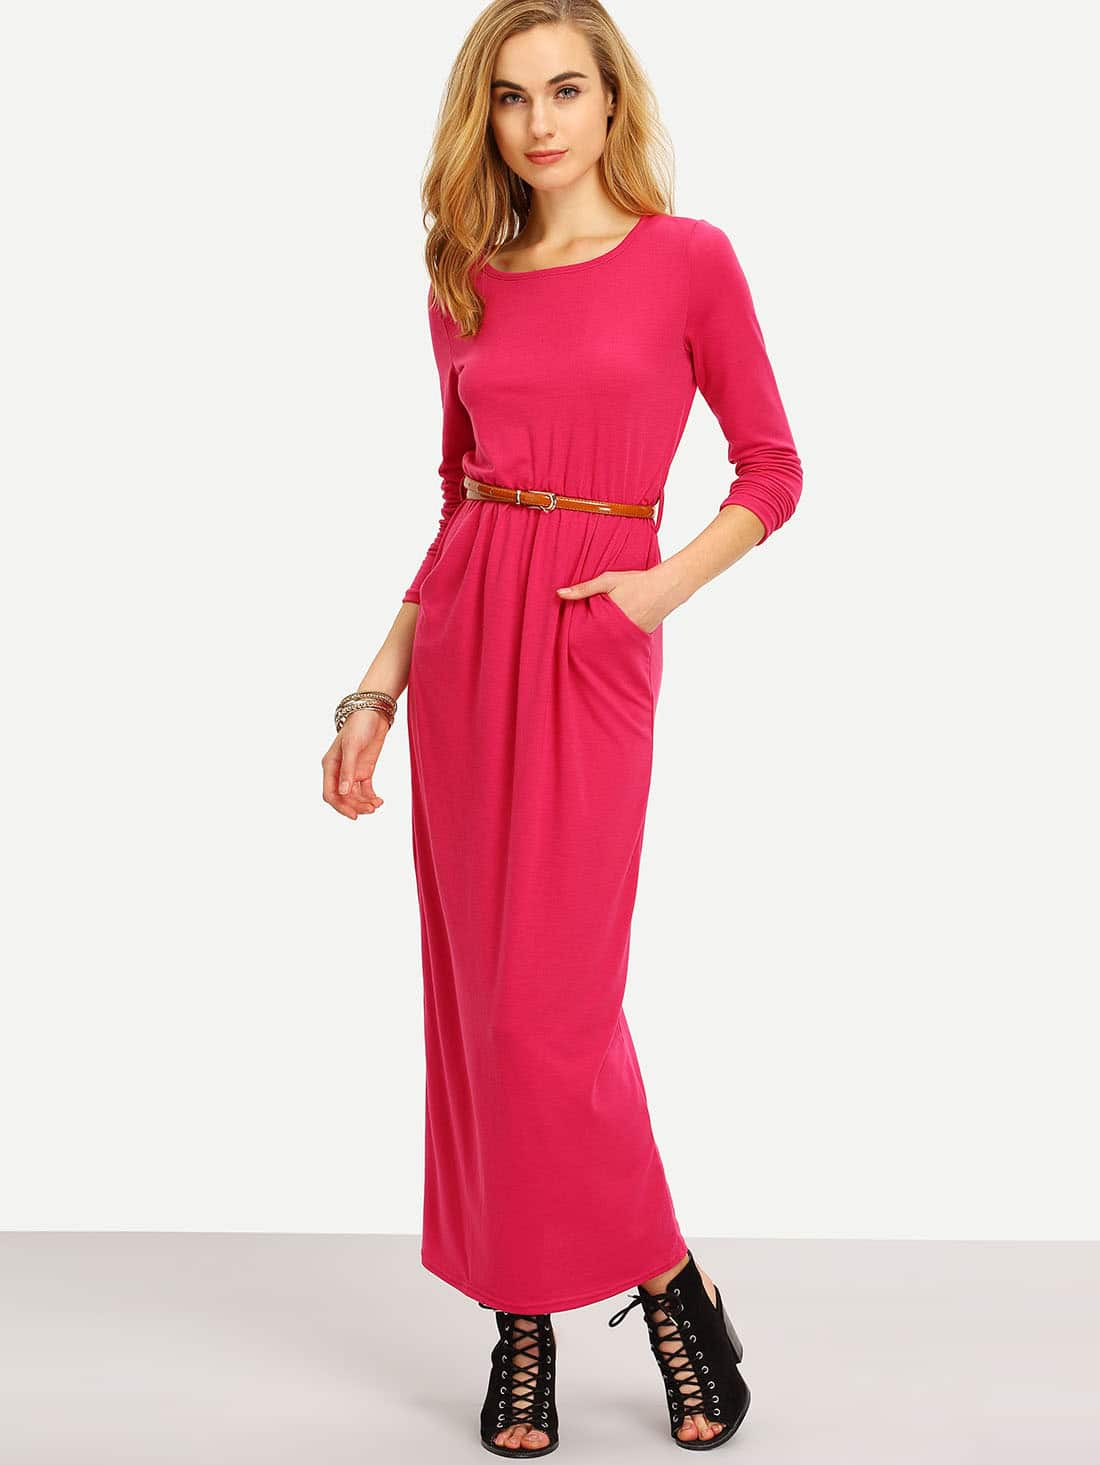 Burgundy Long Sleeve Pockets Maxi DressBurgundy Long Sleeve Pockets Maxi Dress<br><br>color: Hot Pink<br>size: L,M,S,XL